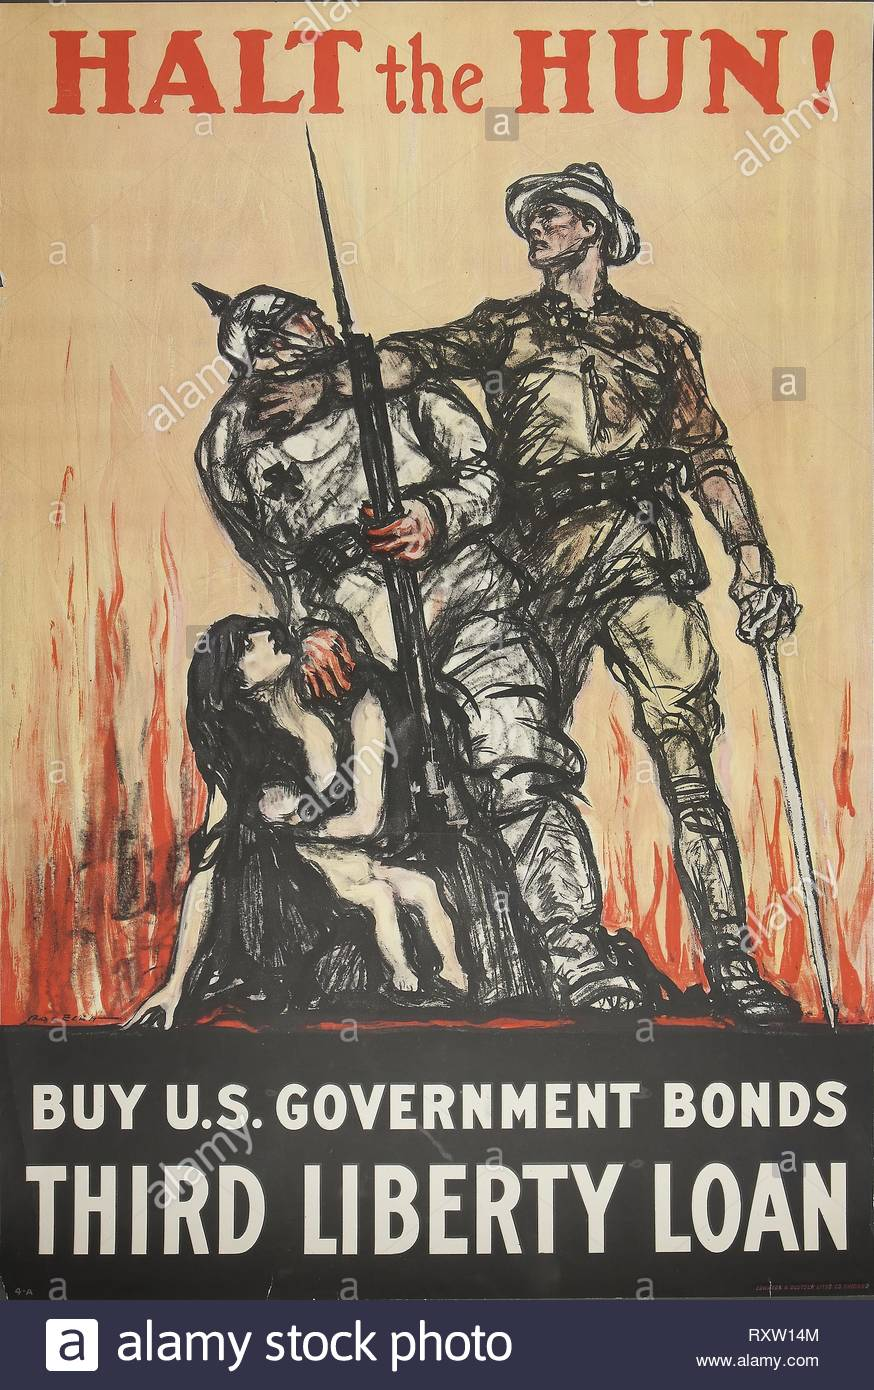 Halt the Hun! Buy U.S. Government Bonds Third Liberty Loan. Henry Patrick Raleigh (American, 1880-1945); printed by Edwards & Deutsch Litho. Company. Date: 1918. Dimensions: 748 x 506 mm. Color lithograph on cream wove paper. Origin: United States. Museum: The Chicago Art Institute. - Stock Image